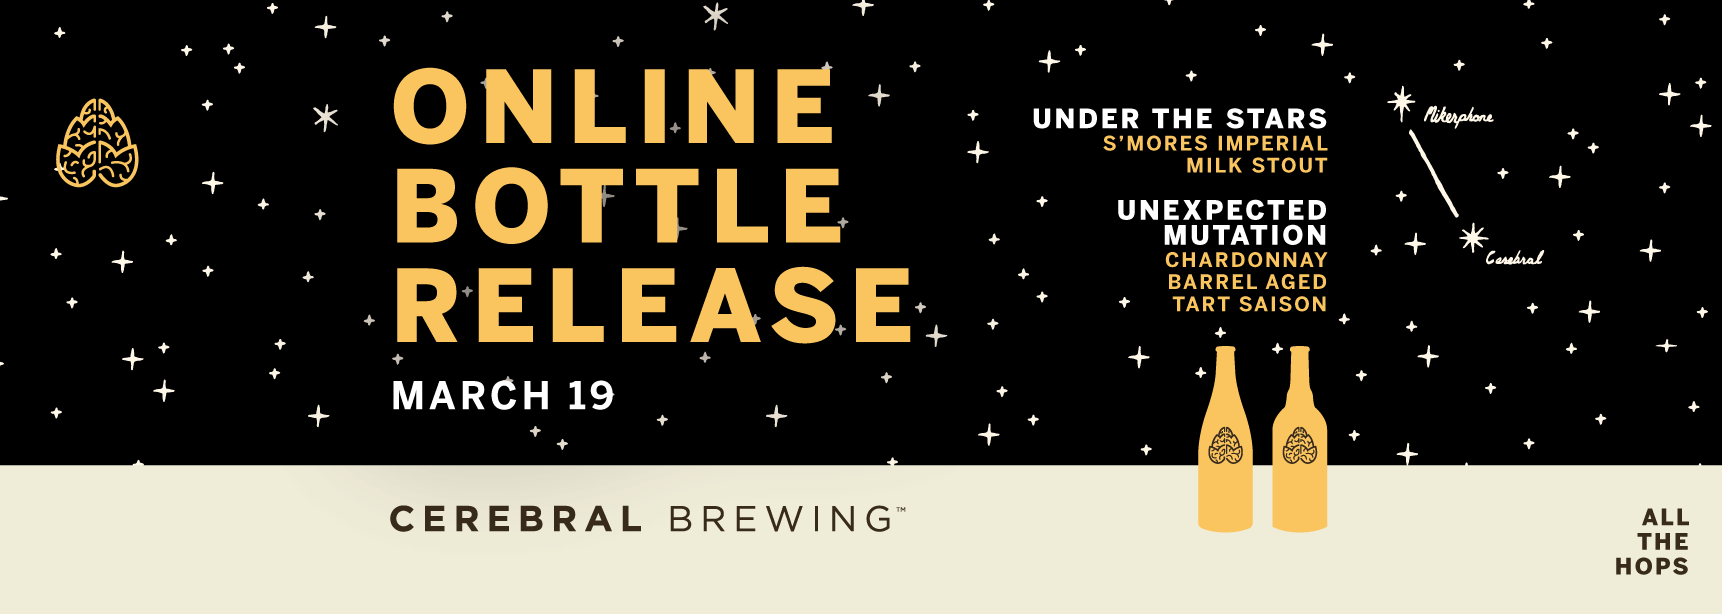 Online_Bottle_Release_Facebook_Cover_Event.png